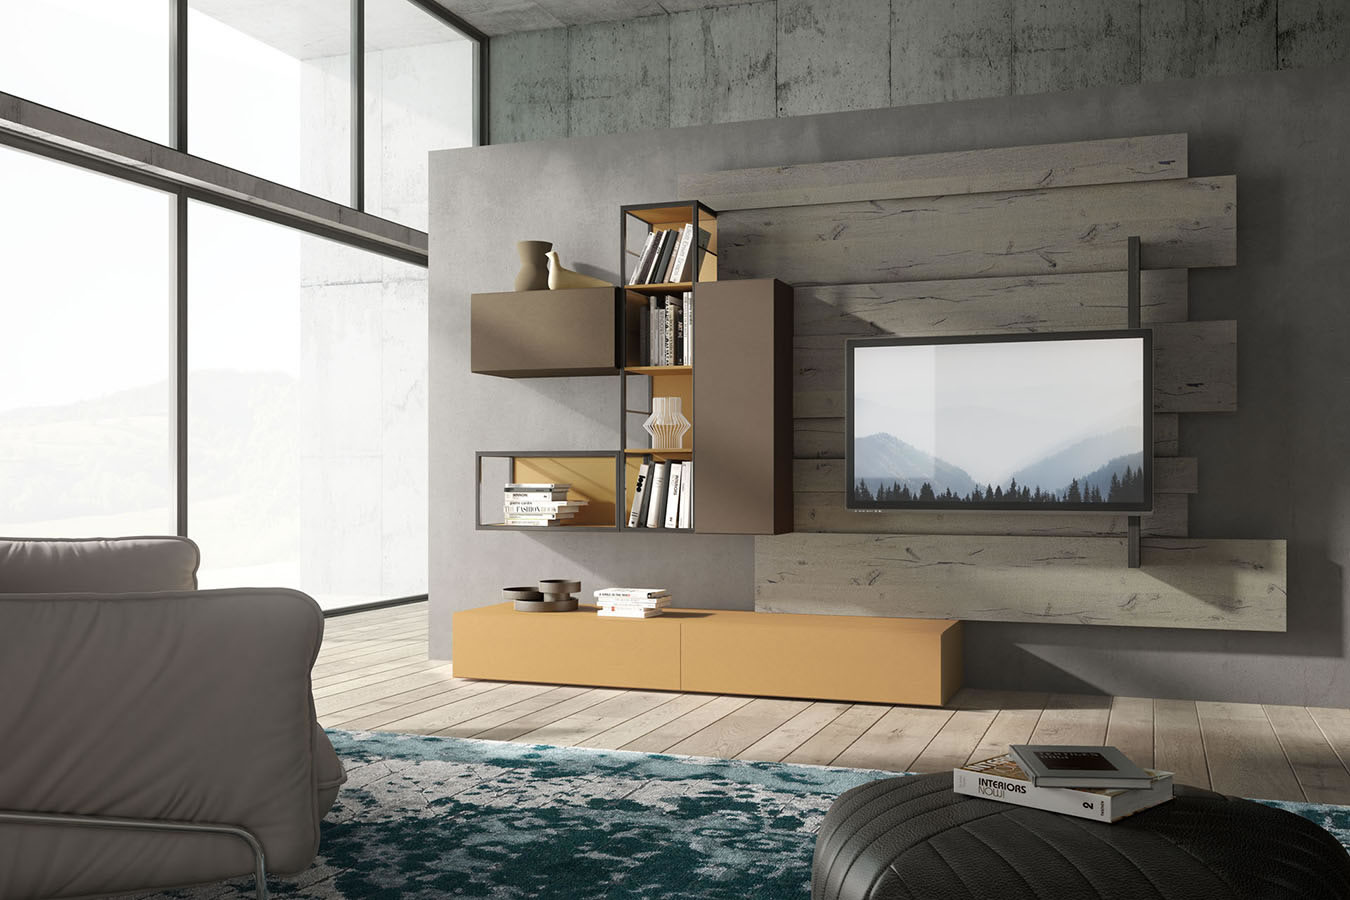 Versatile And Modular, Create Your Own Composition And Choose Your  Finishes. Endless Possibilities For This Modern Italian Wall Unit Furniture  System.